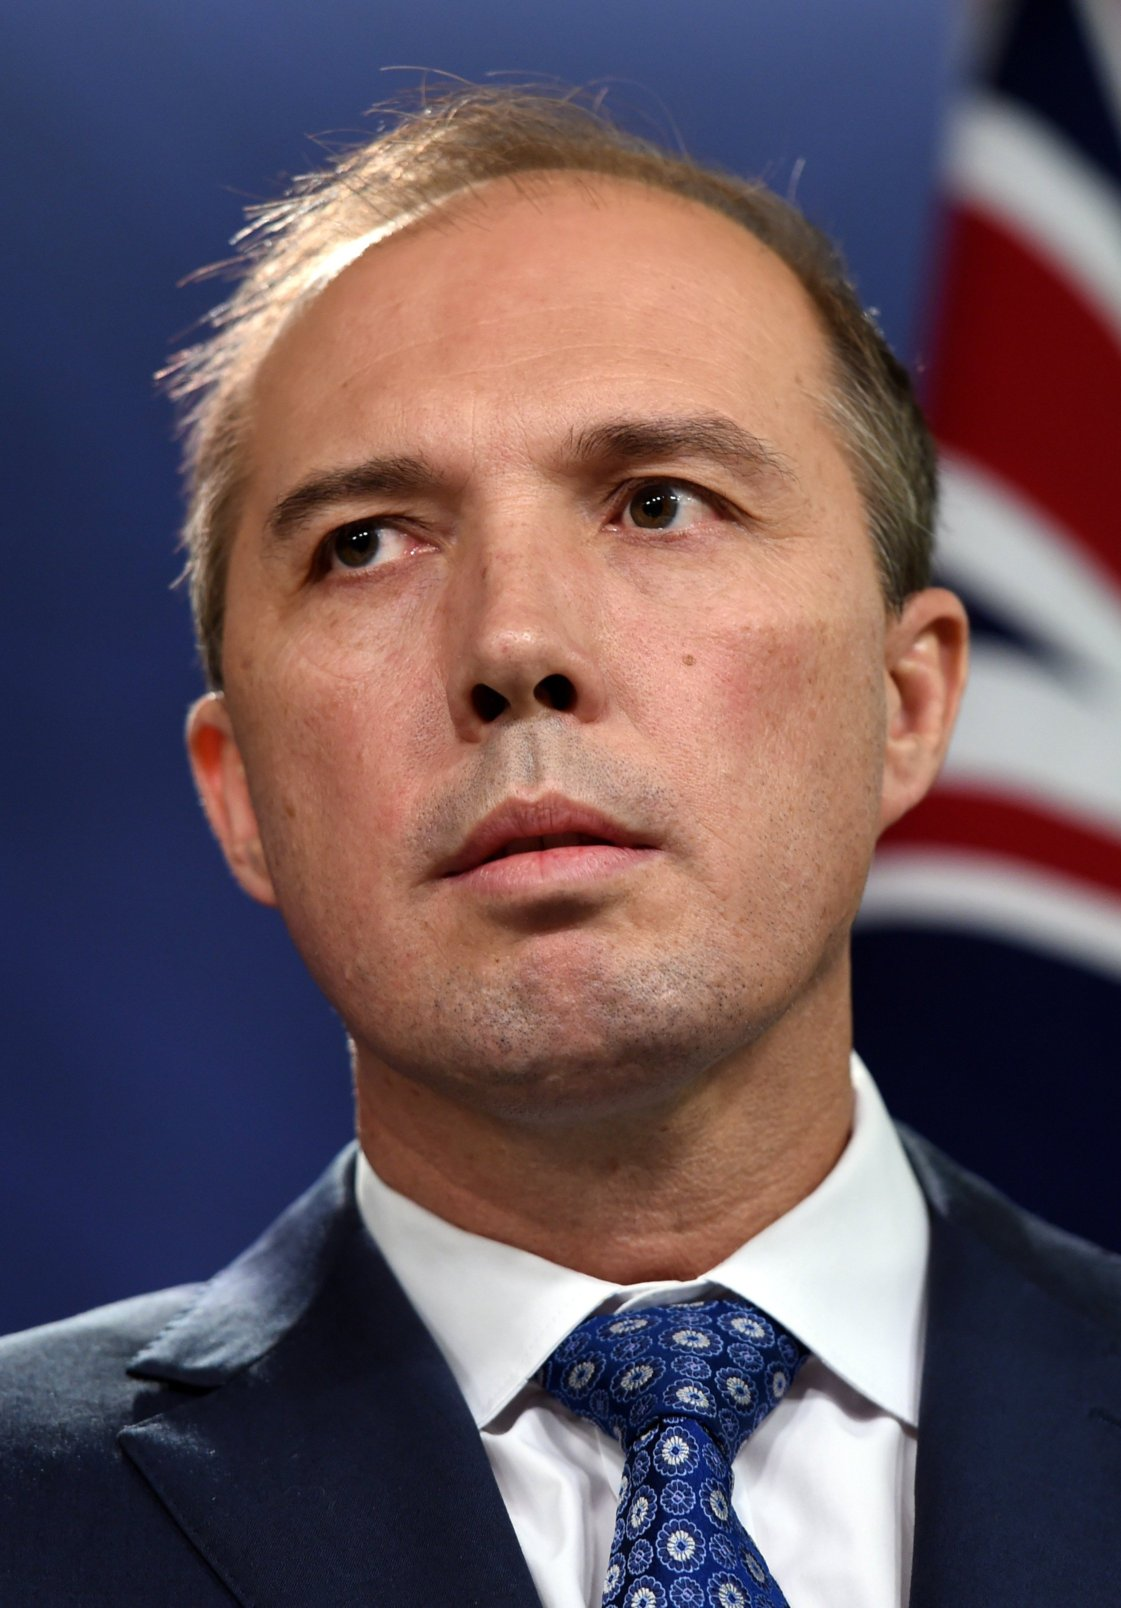 Peter Dutton, Immigration Minister